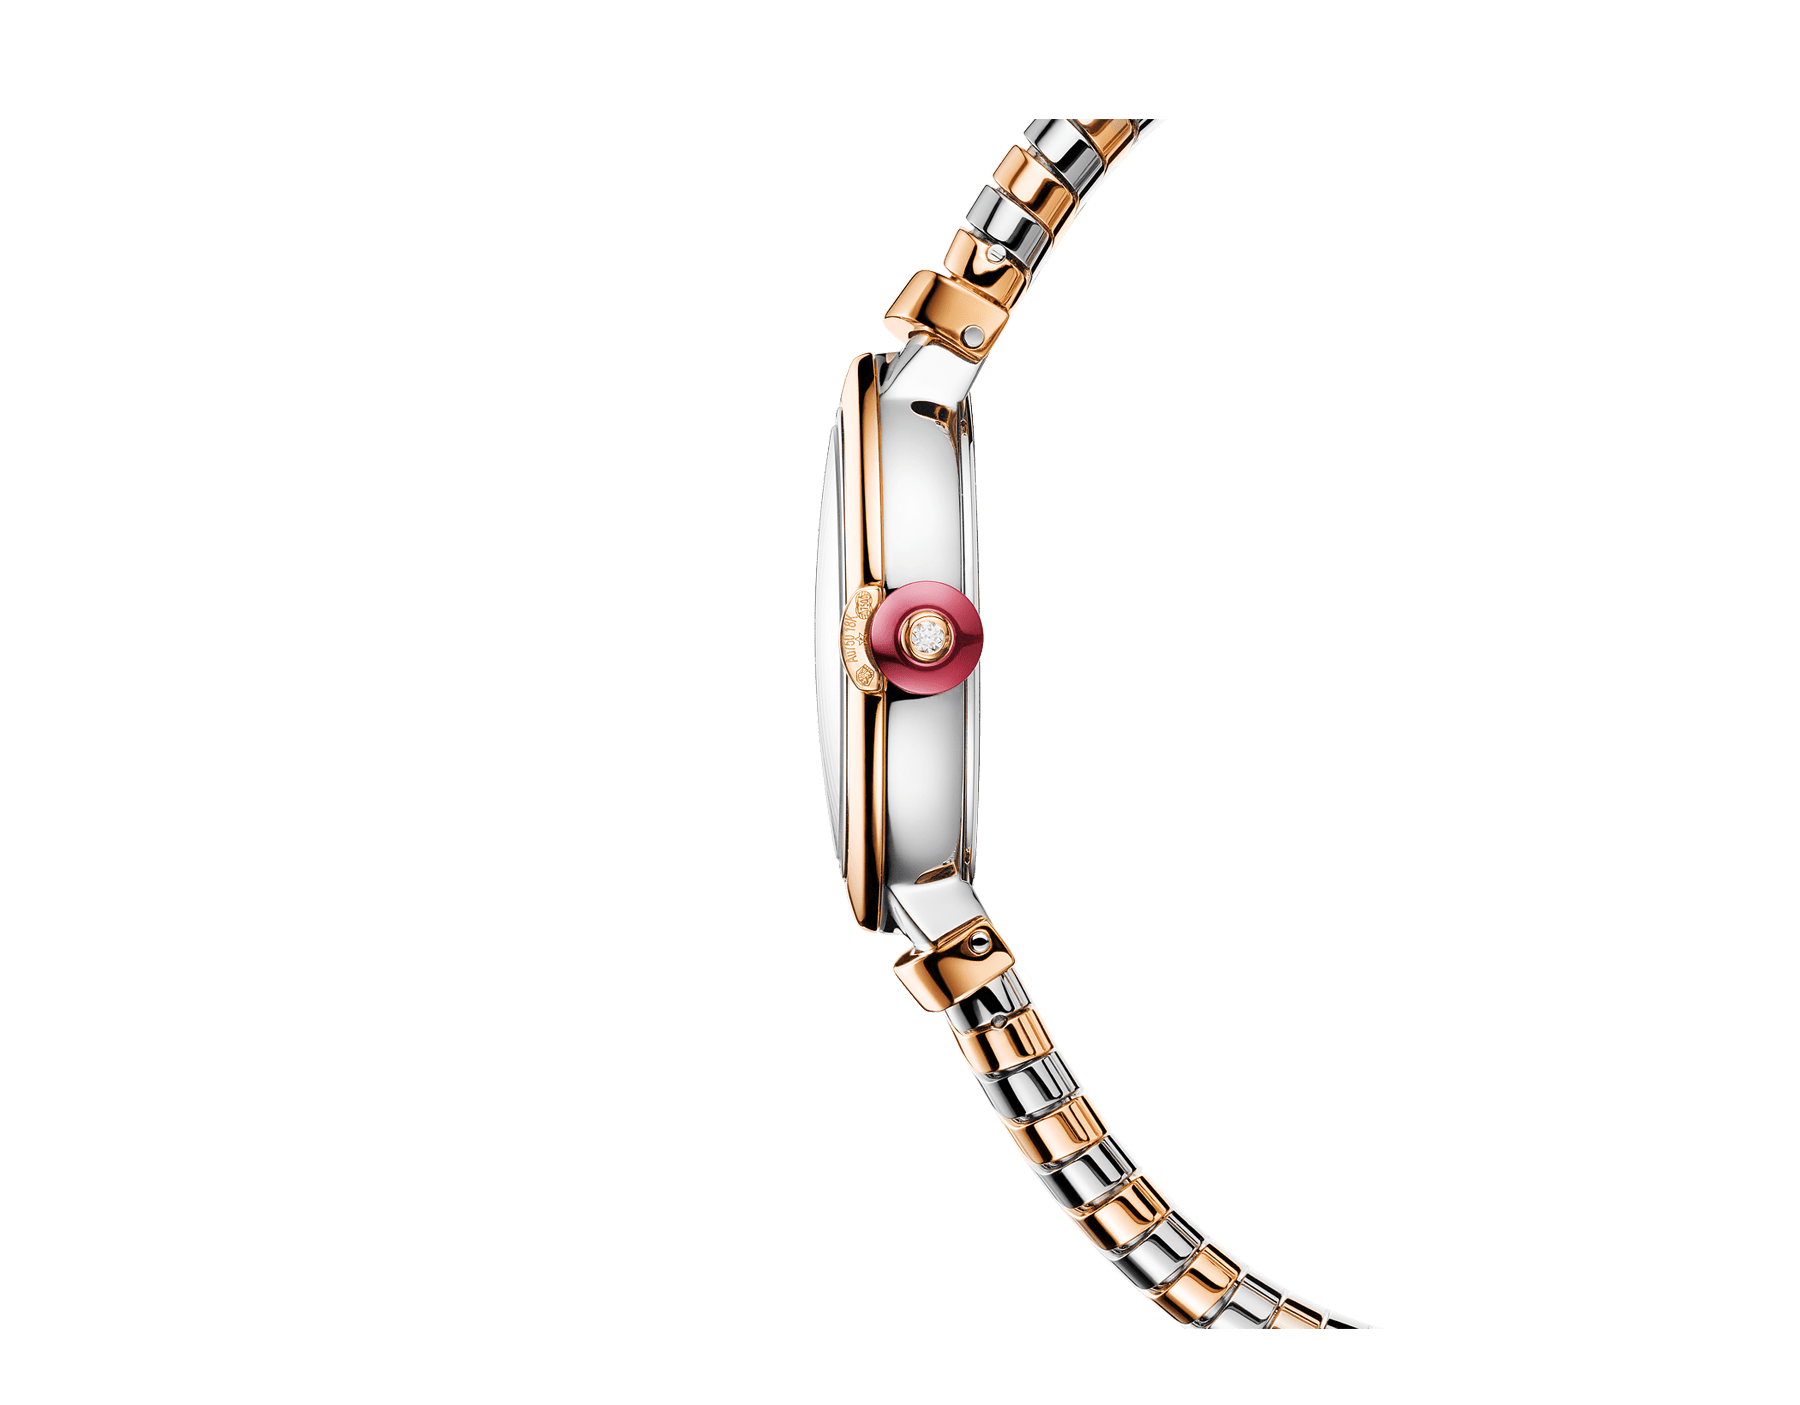 LVCEA Tubogas watch in 18 kt rose gold and stainless steel case and tubogas bracelet, with white mother-of-pearl dial and diamond indexes 102952 image 2